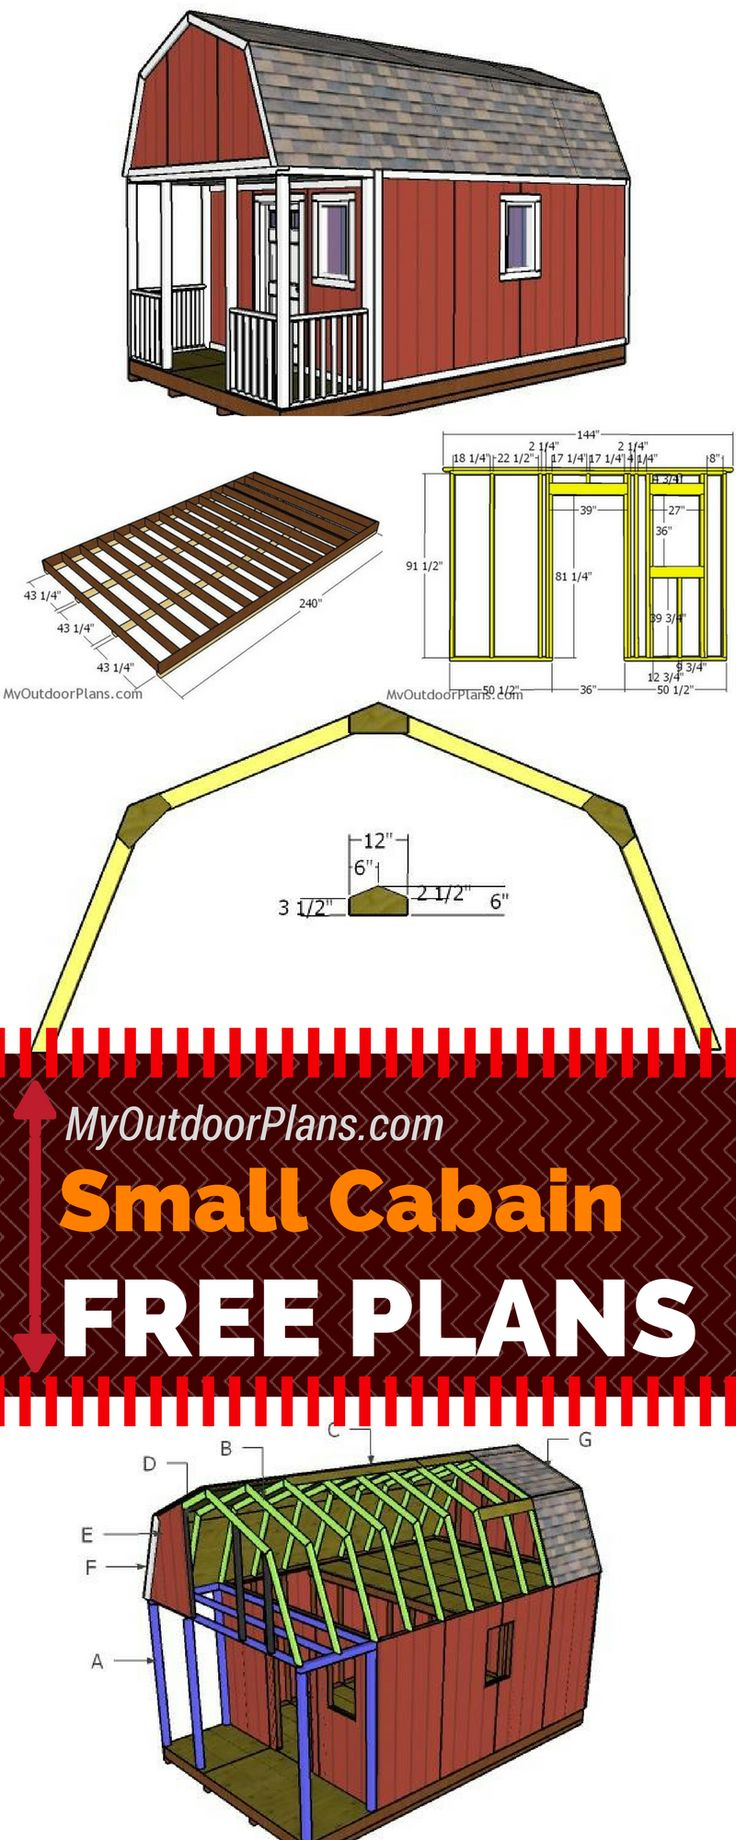 Step by step plans for building a small cabin with front porch and roof check